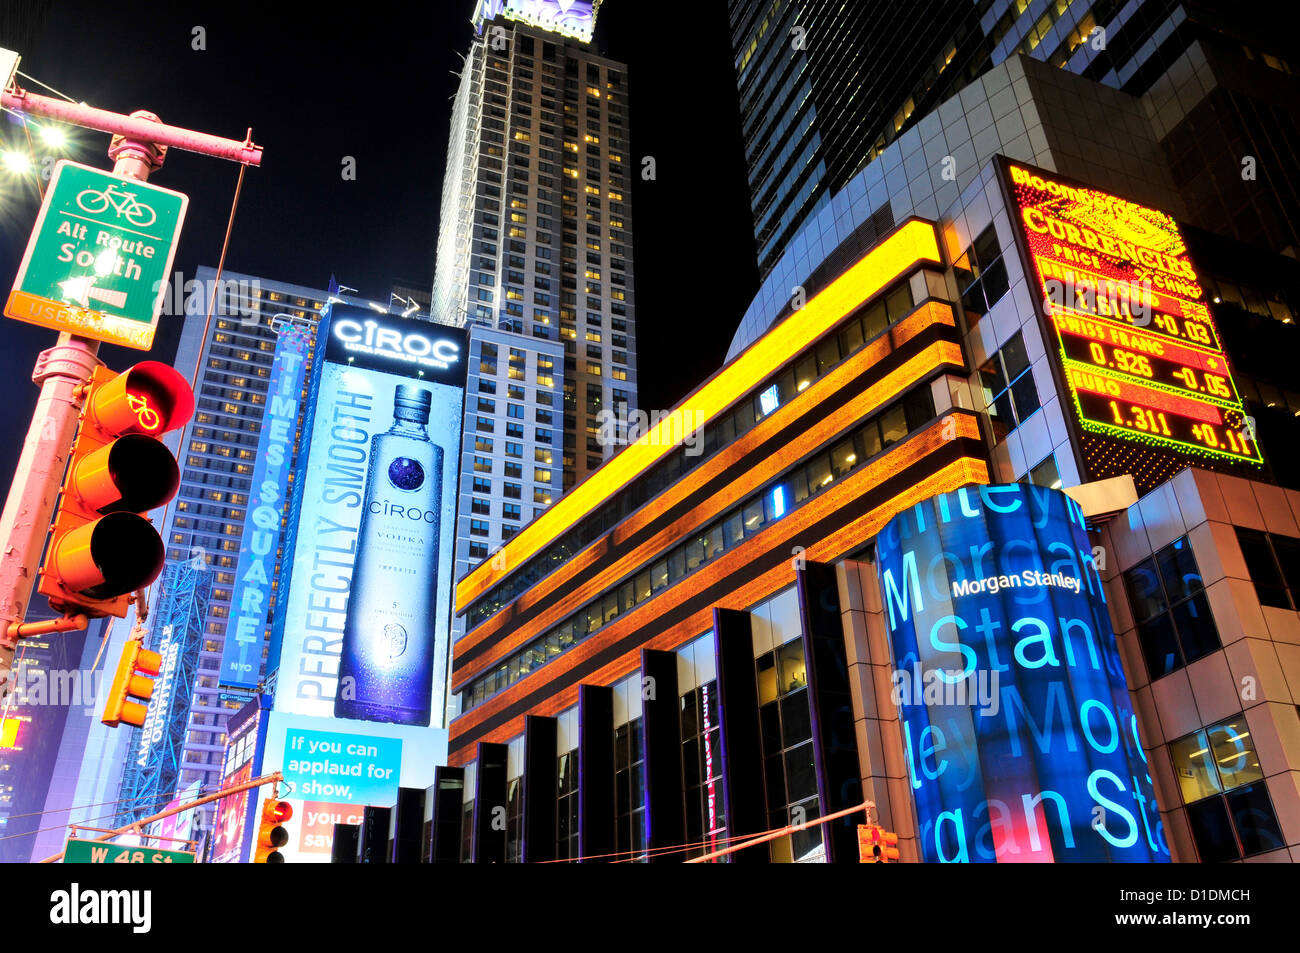 morgan stanley building times square 42nd street new york city stock photo 52547169 alamy. Black Bedroom Furniture Sets. Home Design Ideas